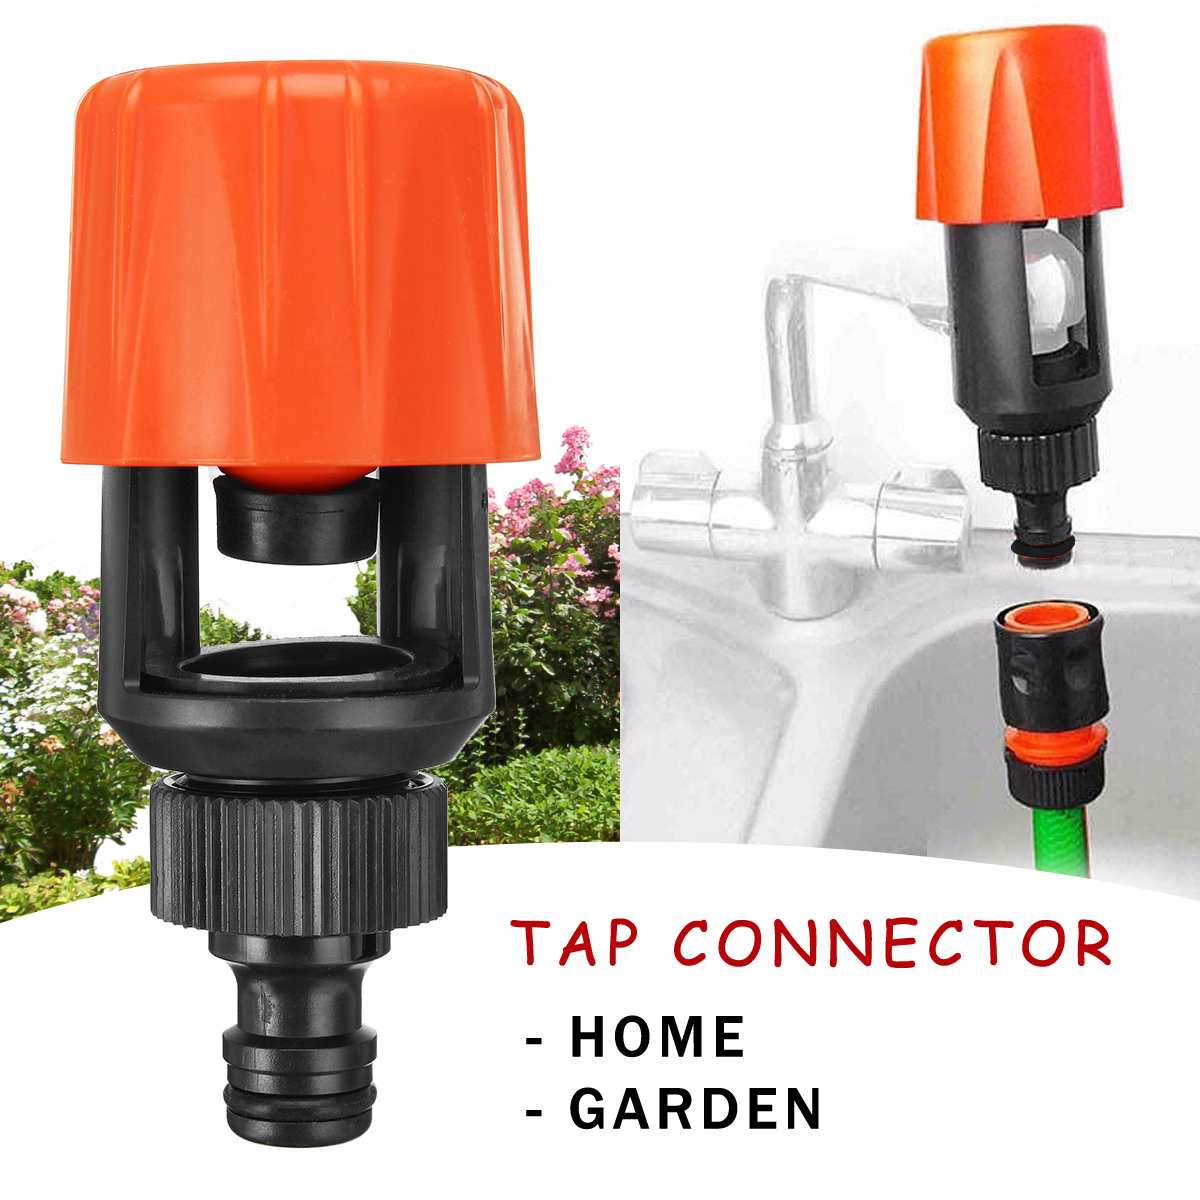 1Pcs Universal Kitchen Mixer Tap Adaptor Water Plastic Hose Pipe Joint Tube Push Into Quick Coupling Connect Garden Tap Fitting1Pcs Universal Kitchen Mixer Tap Adaptor Water Plastic Hose Pipe Joint Tube Push Into Quick Coupling Connect Garden Tap Fitting